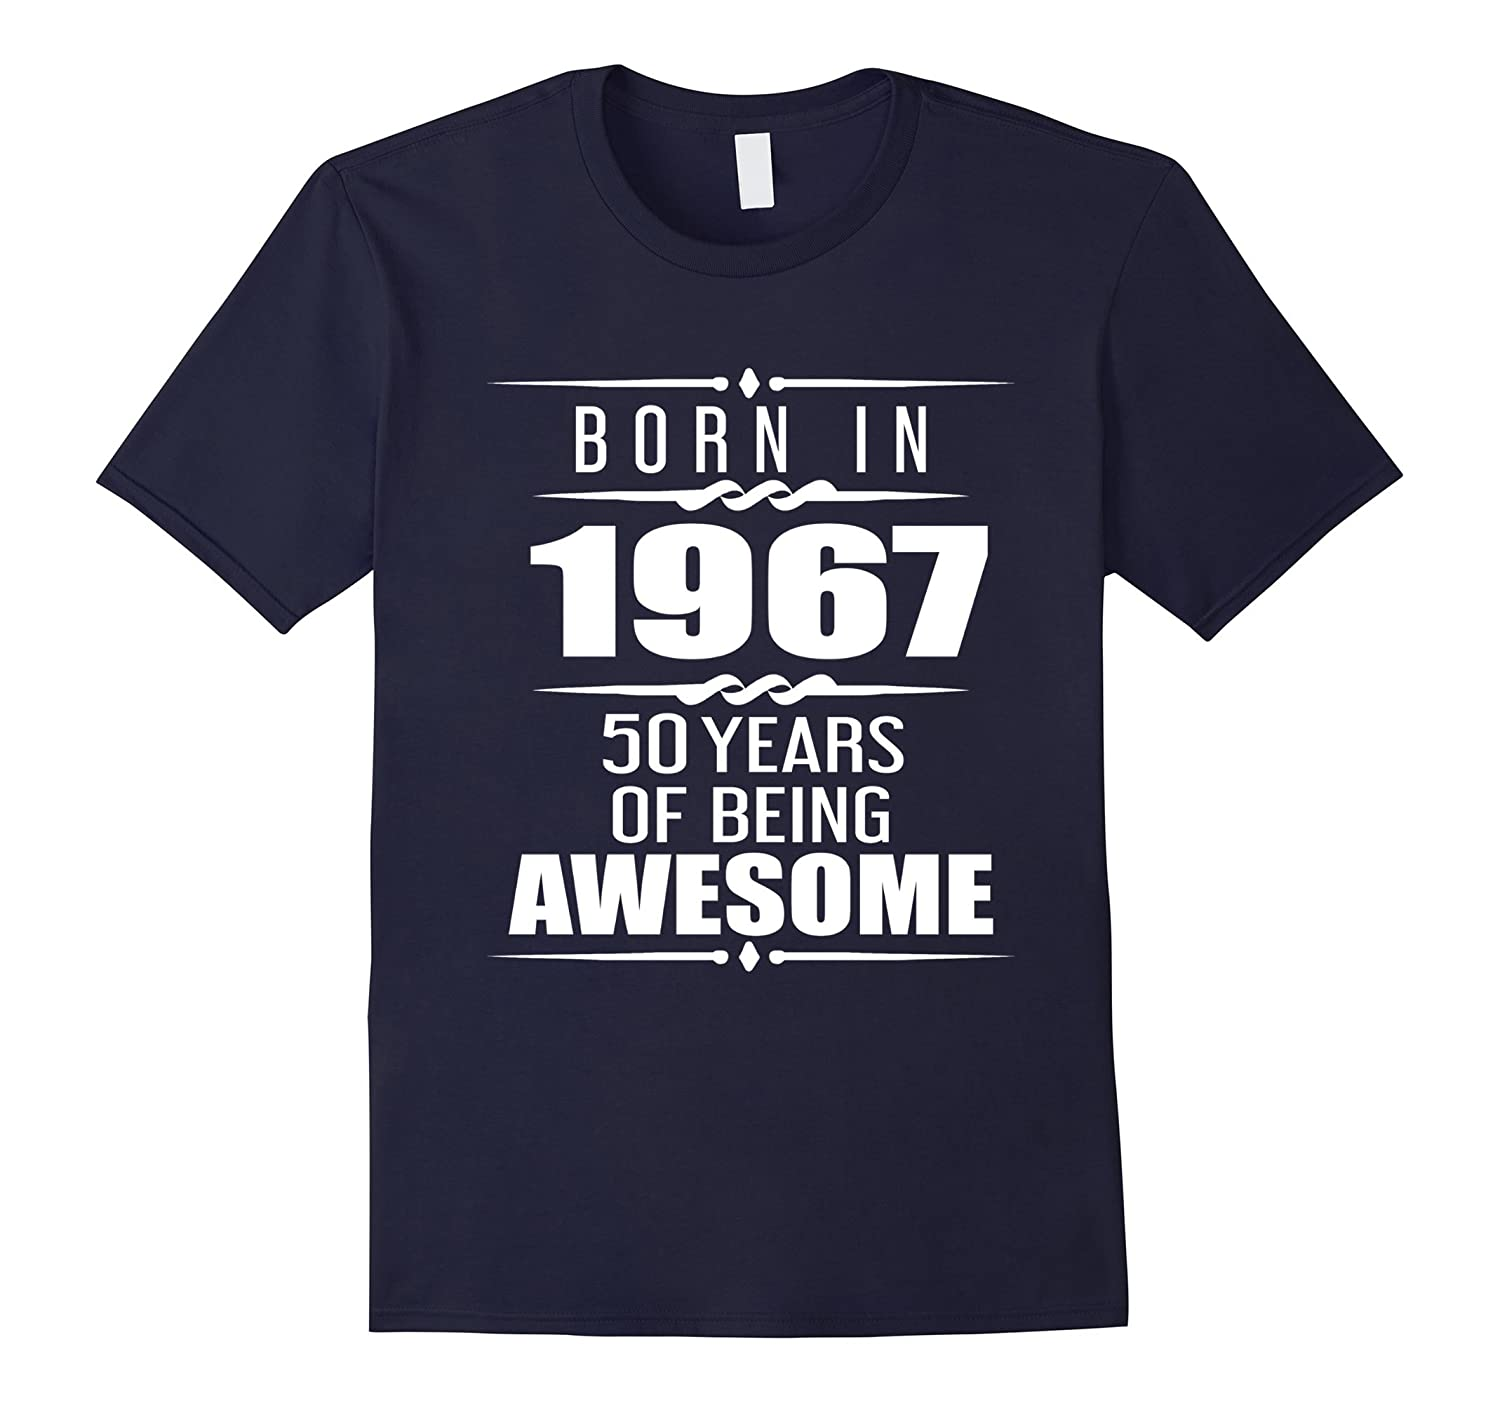 Born in 1967 50 Years of Being Awesome50th Birthday Shirt-Vaci